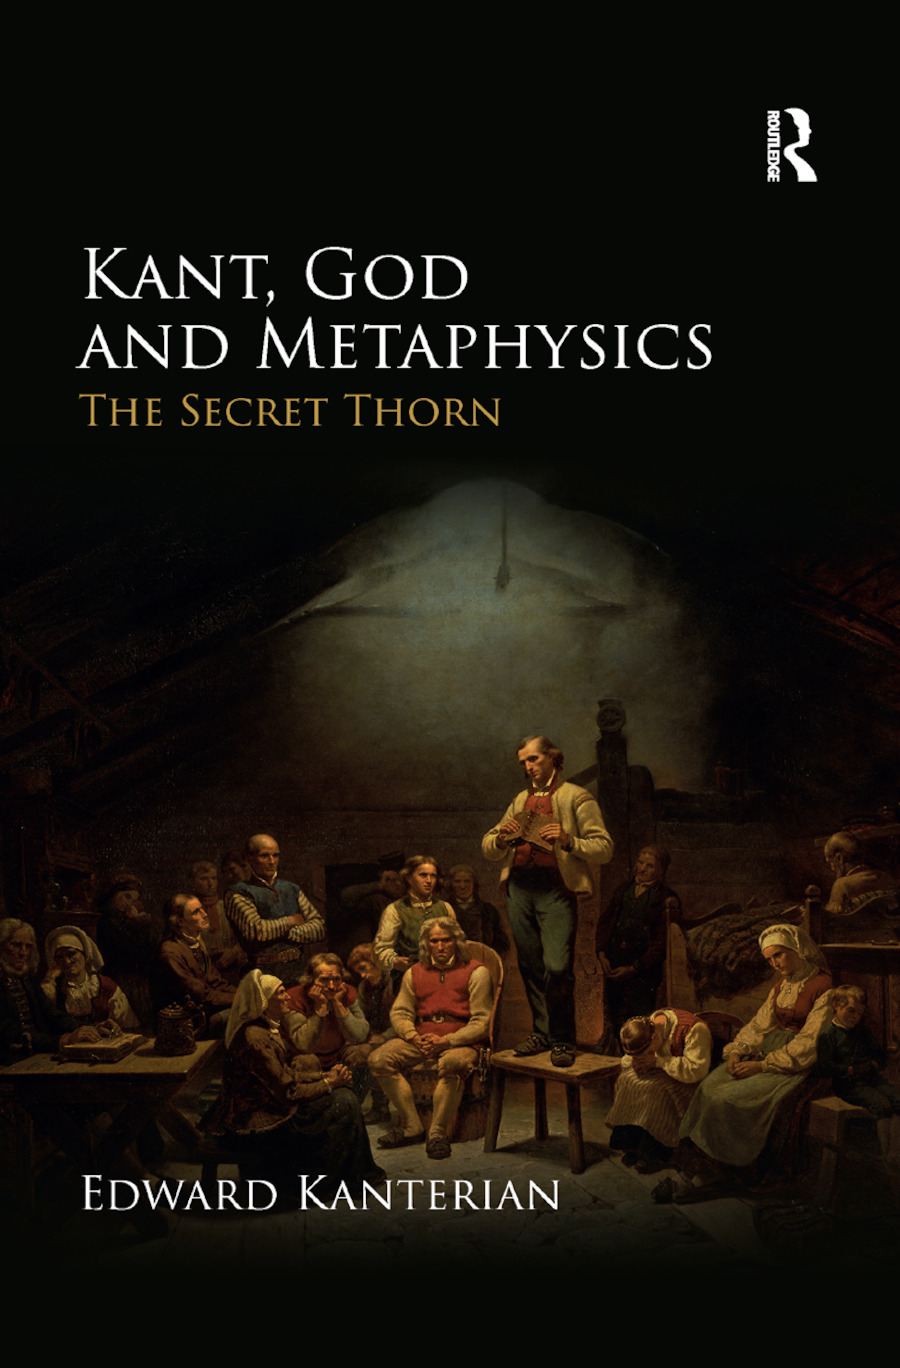 Kant, God and Metaphysics: The Secret Thorn book cover